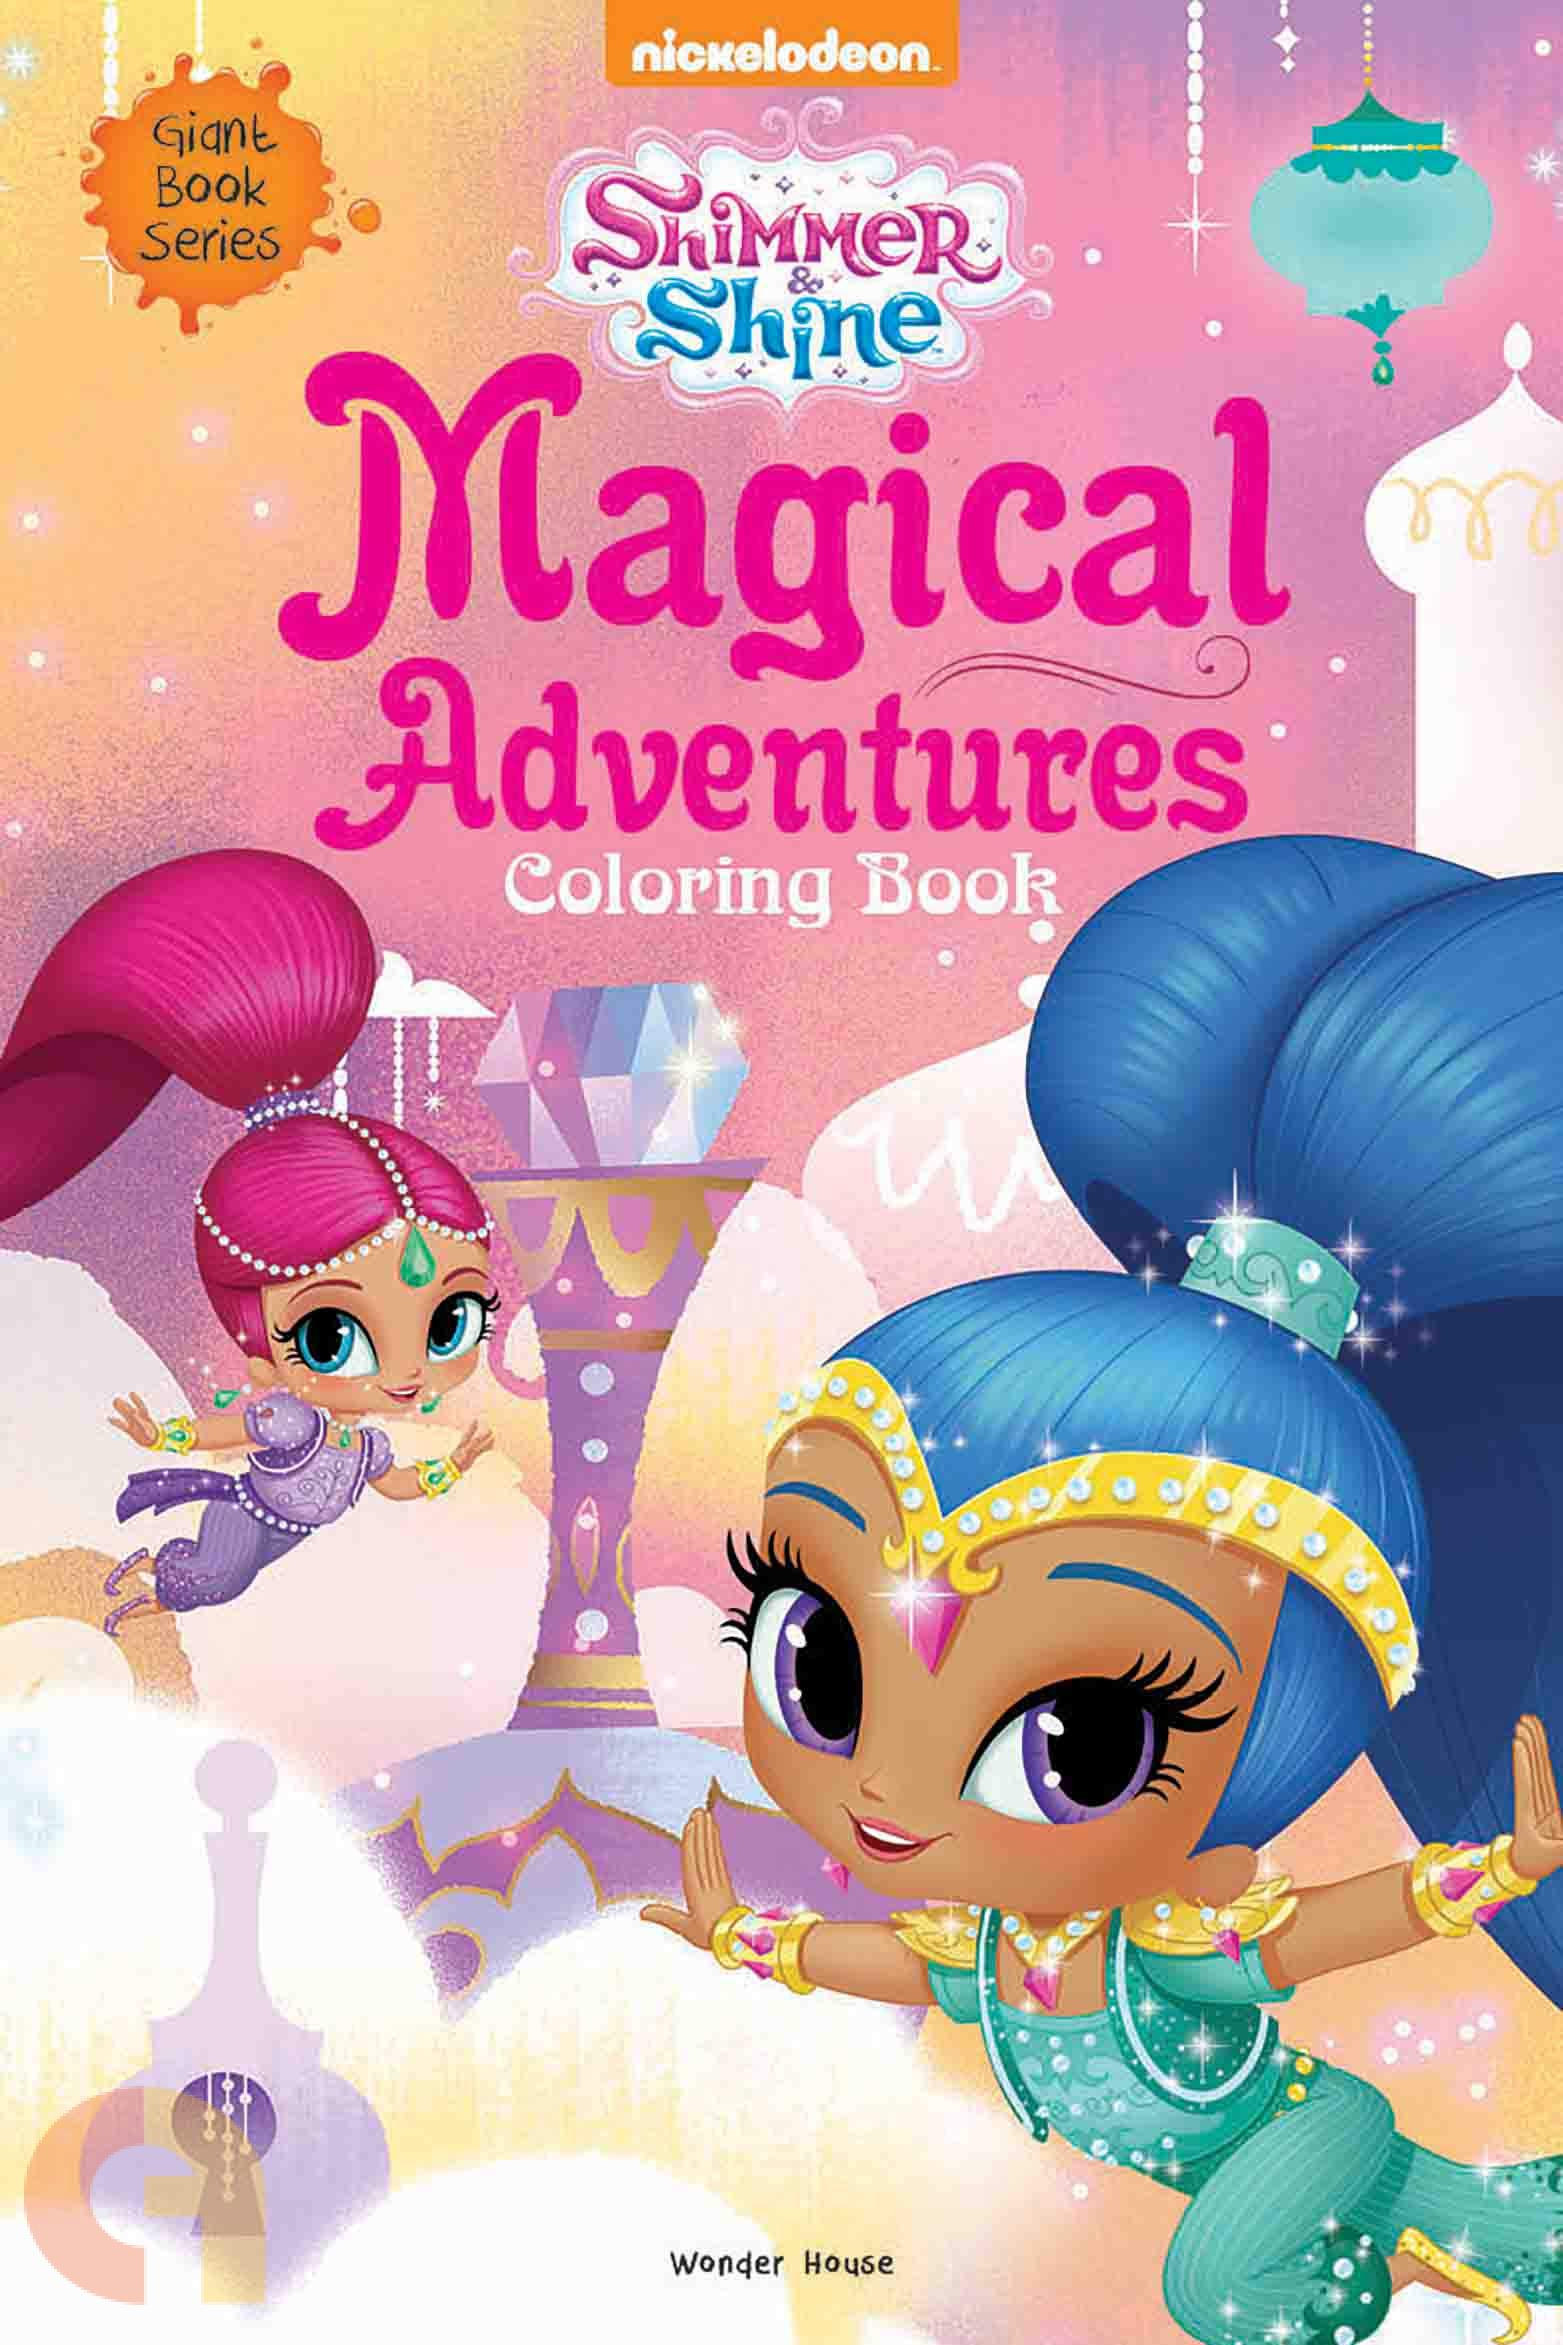 Shimmer & Shine: Magical Adventures